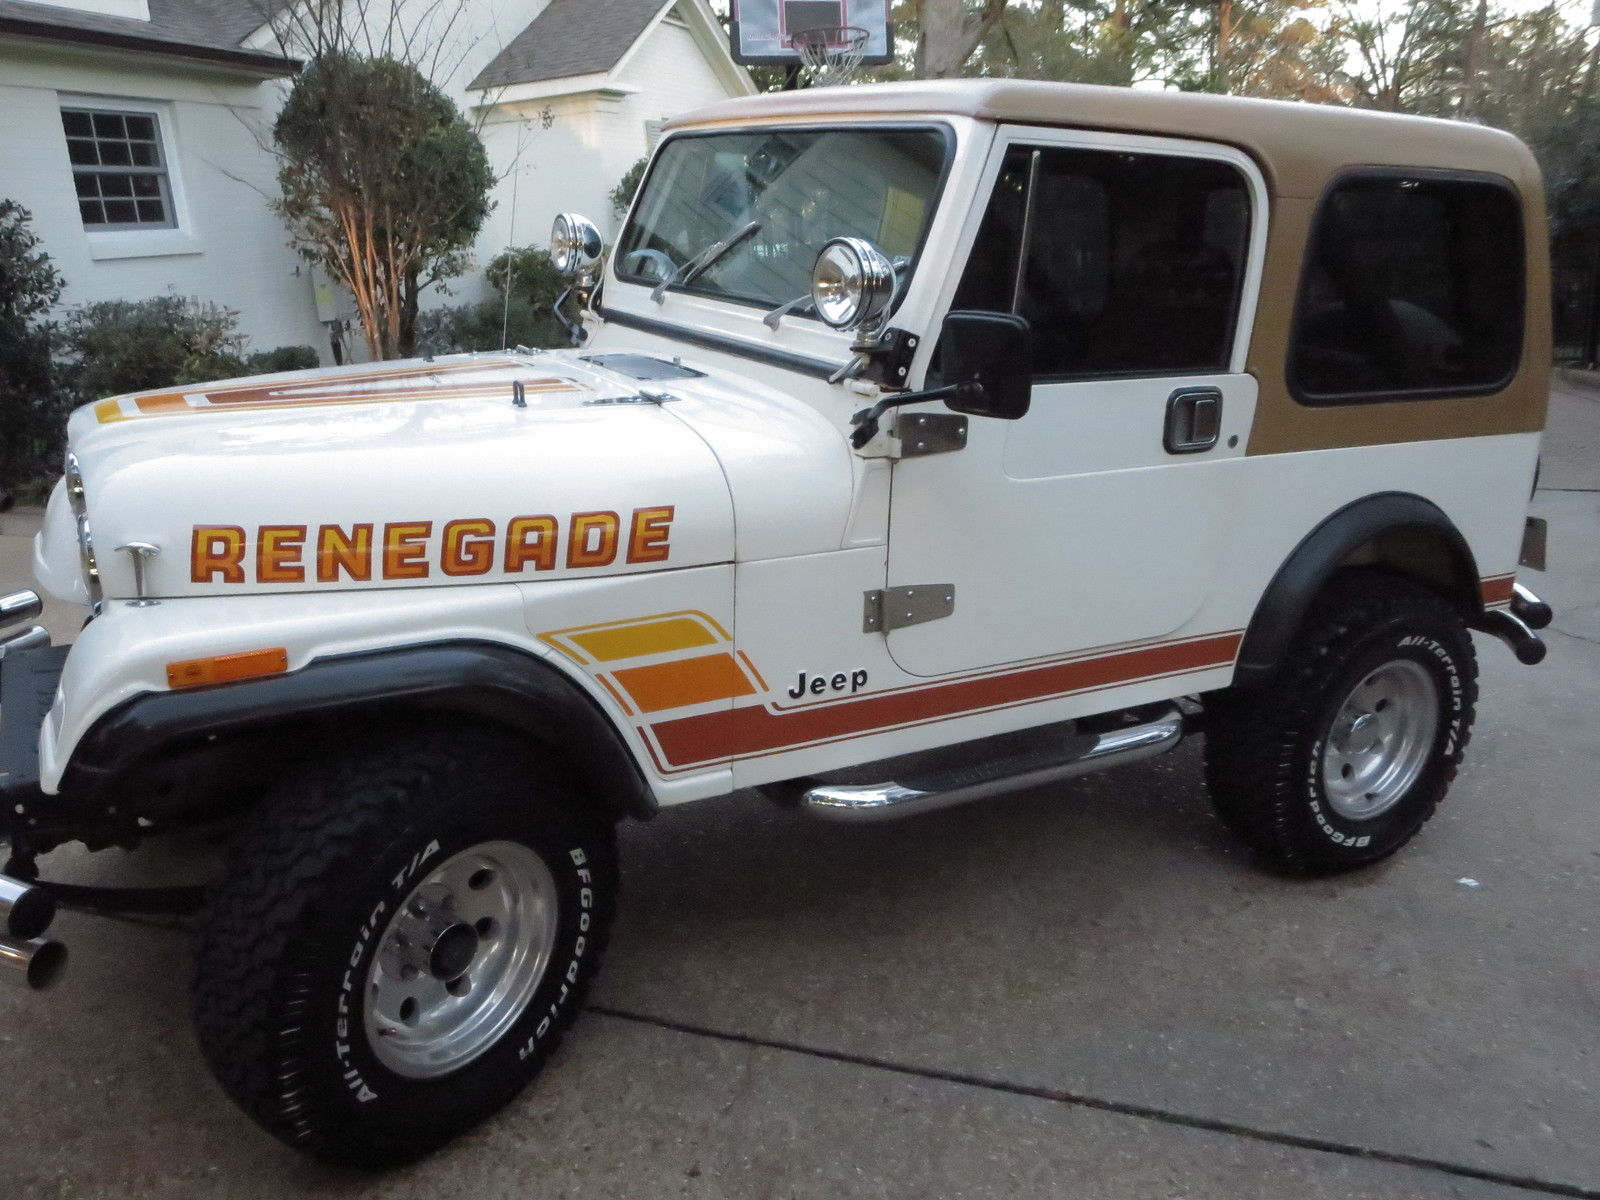 White Cj7 Renegade >> 1984 Jeep CJ7 **A/C AND HARDTOP** Make offer! Renegade CJ-7 - Classic Jeep Other 1984 for sale